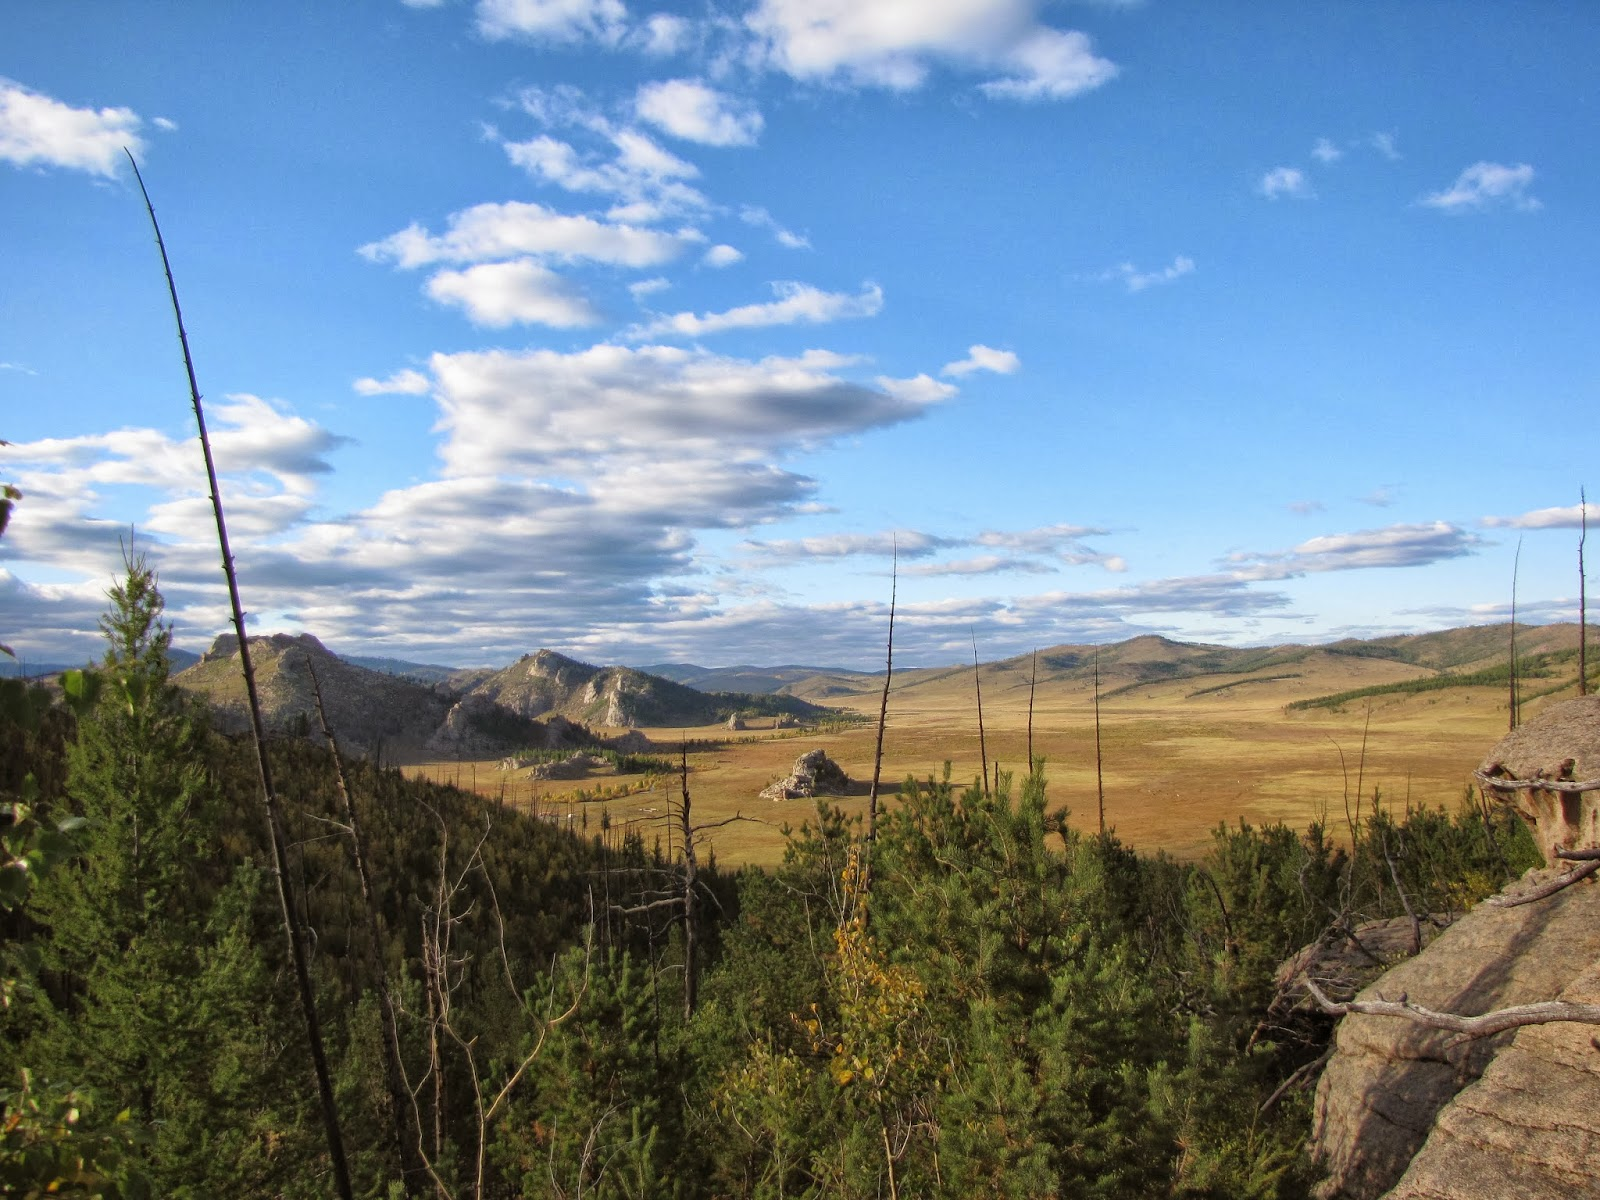 Dornod Natural History Museum Choibalsan, Eternal Landscapes Mongolia - Blogging From The Wild: Travelling ...